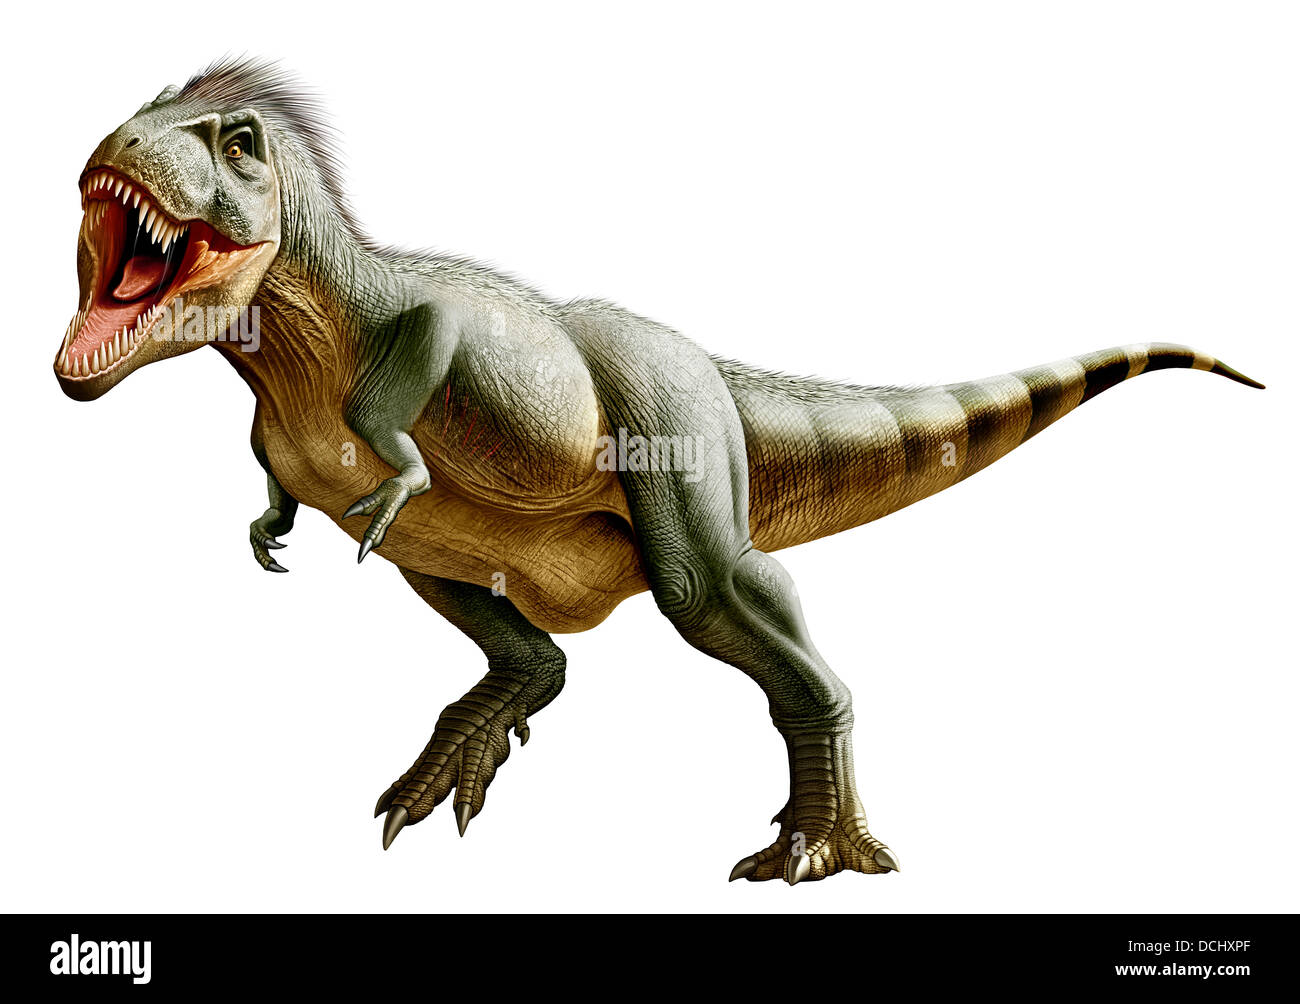 Tyrannosaurus Rex, a genus of coelurosaurian theropod dinosaur of the Upper Cretaceous period. - Stock Image